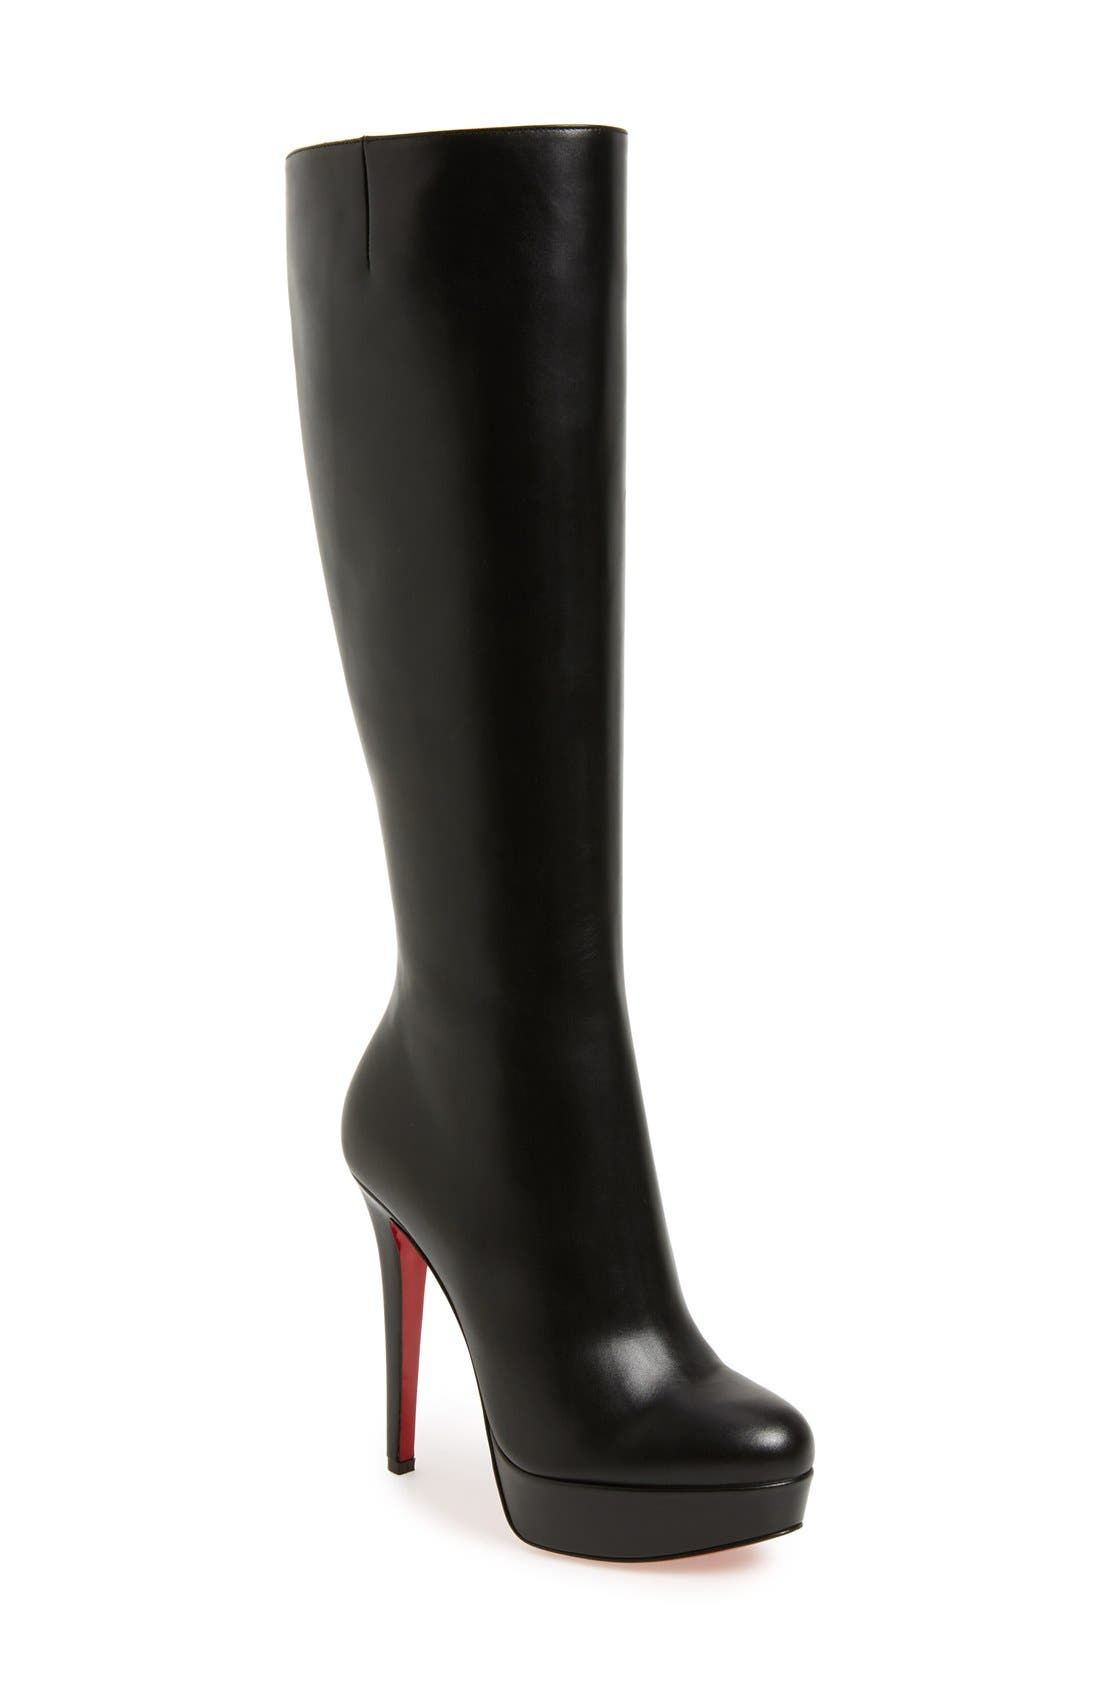 Alternate Image 1 Selected - Christian Louboutin 'Bianca Botta' Platform Boot